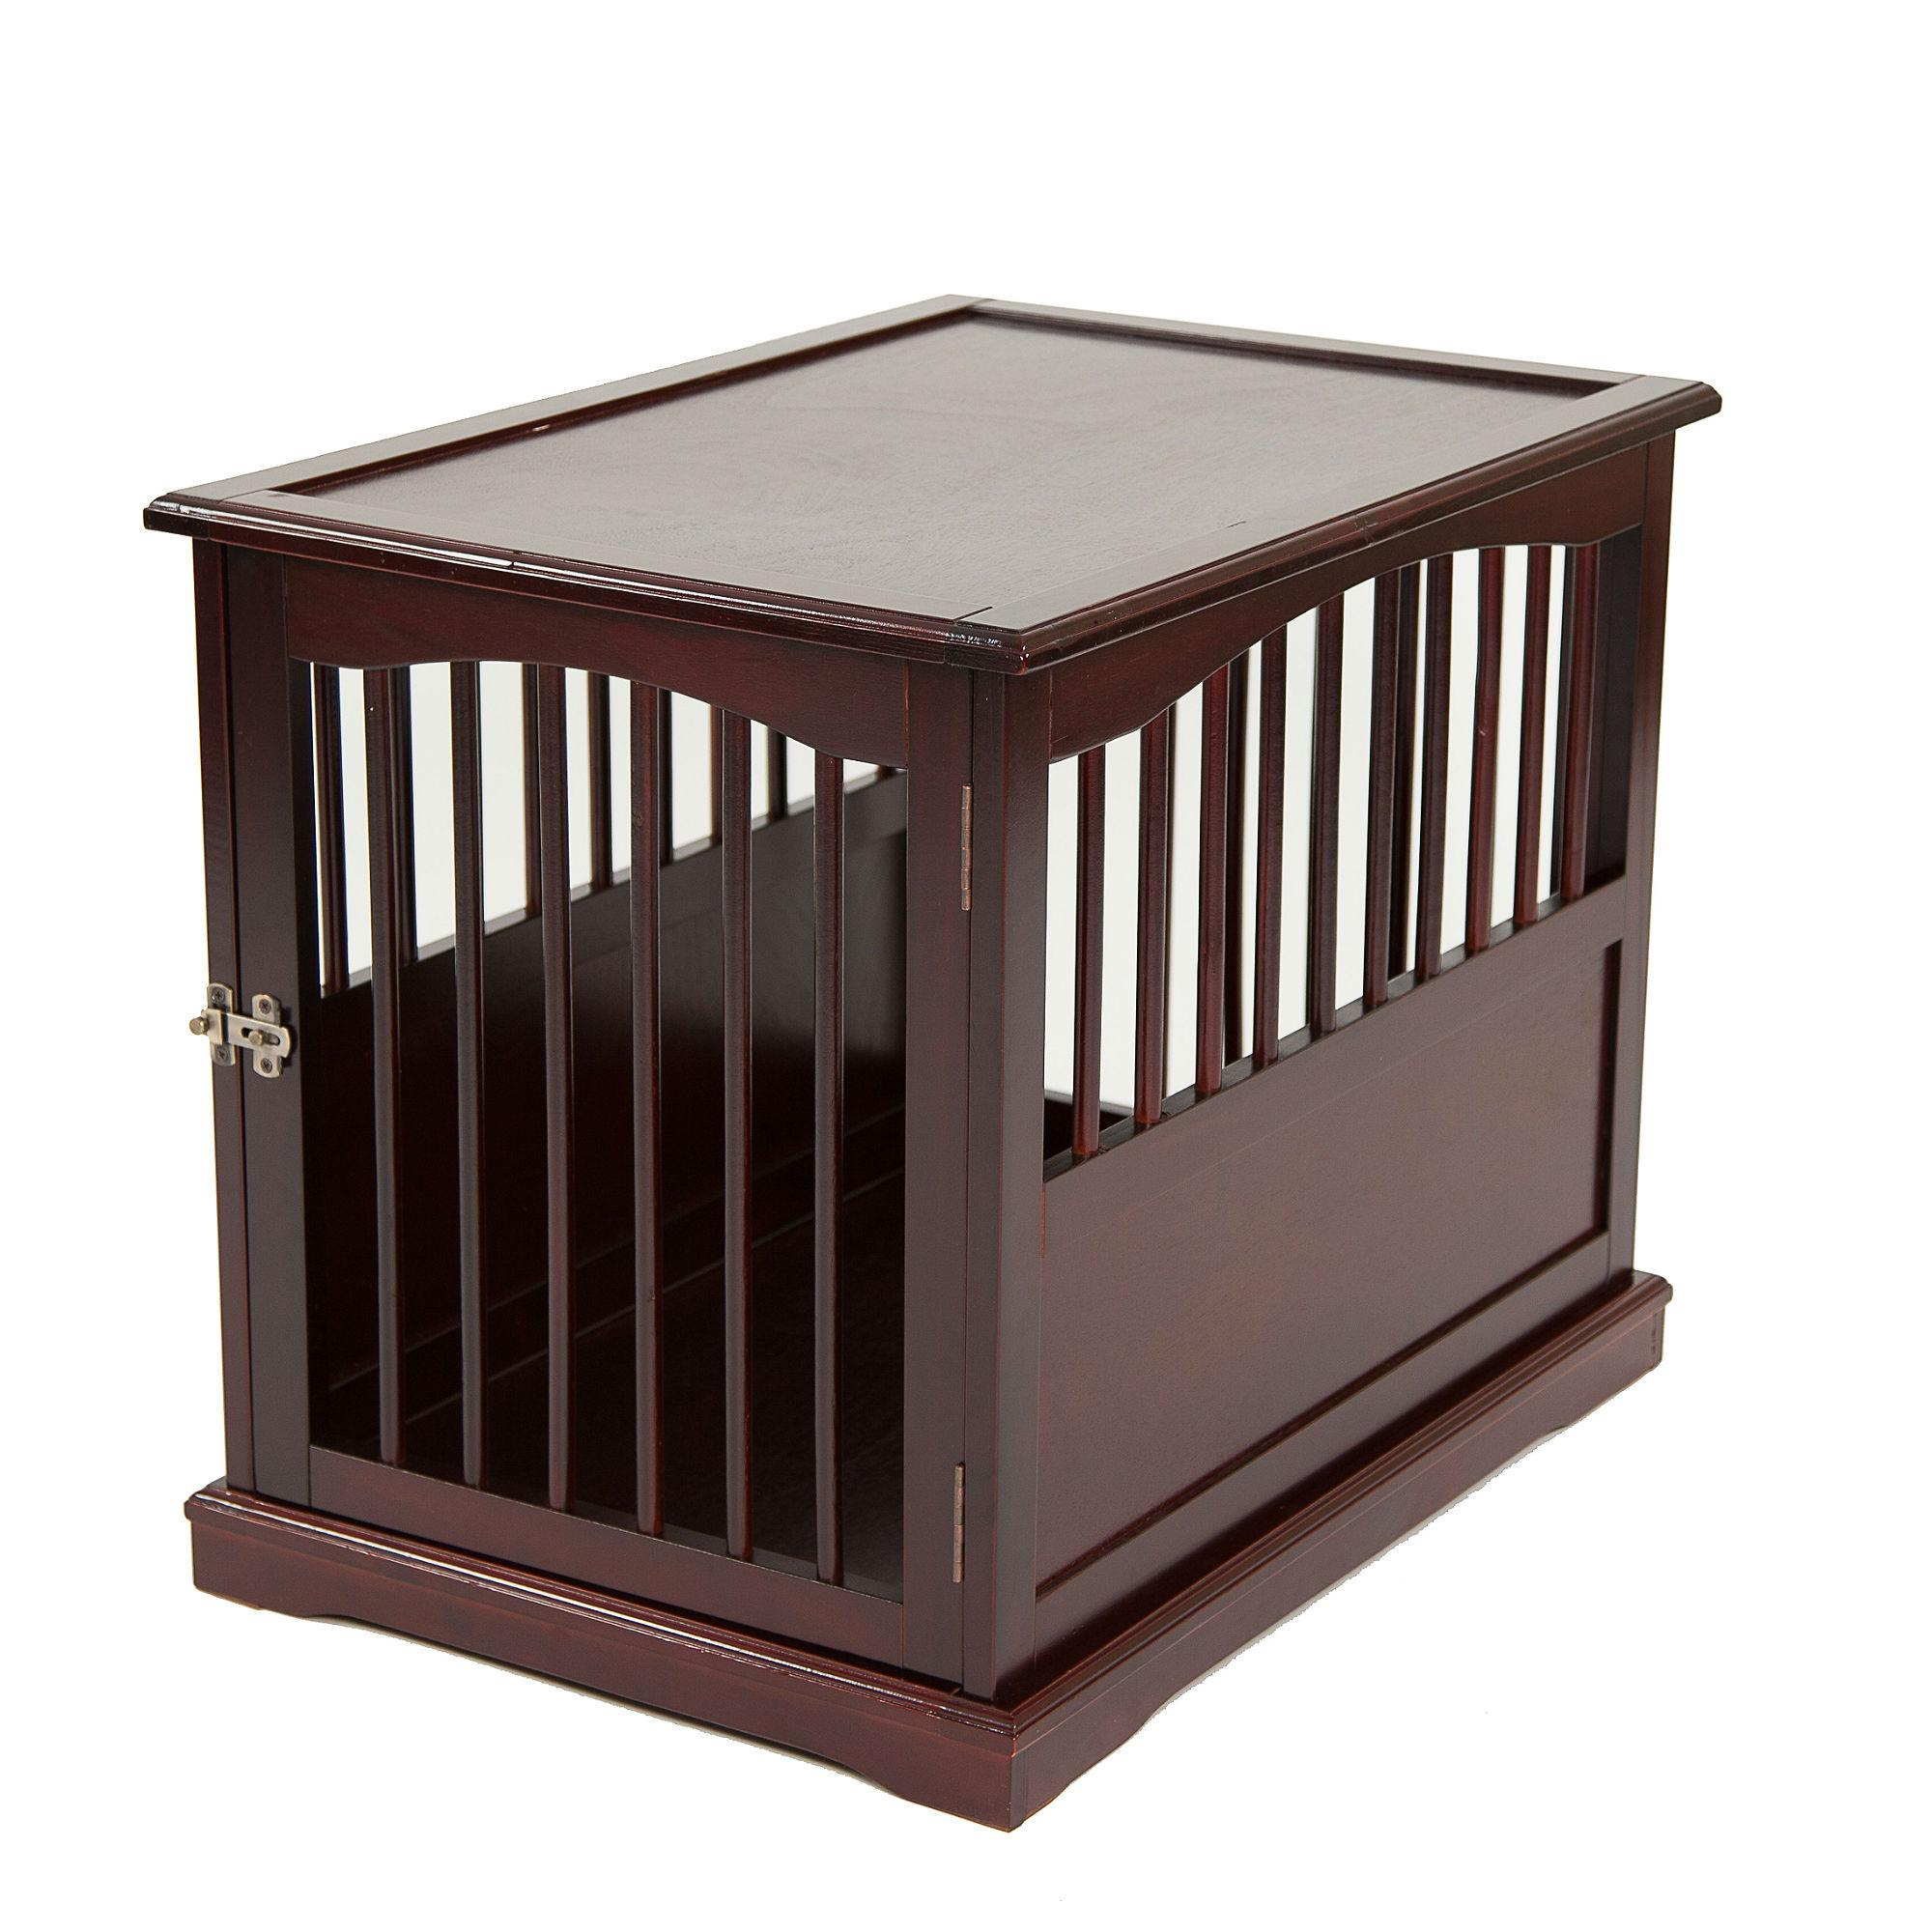 Primetime Petz End Table Dog Crate - Walnut